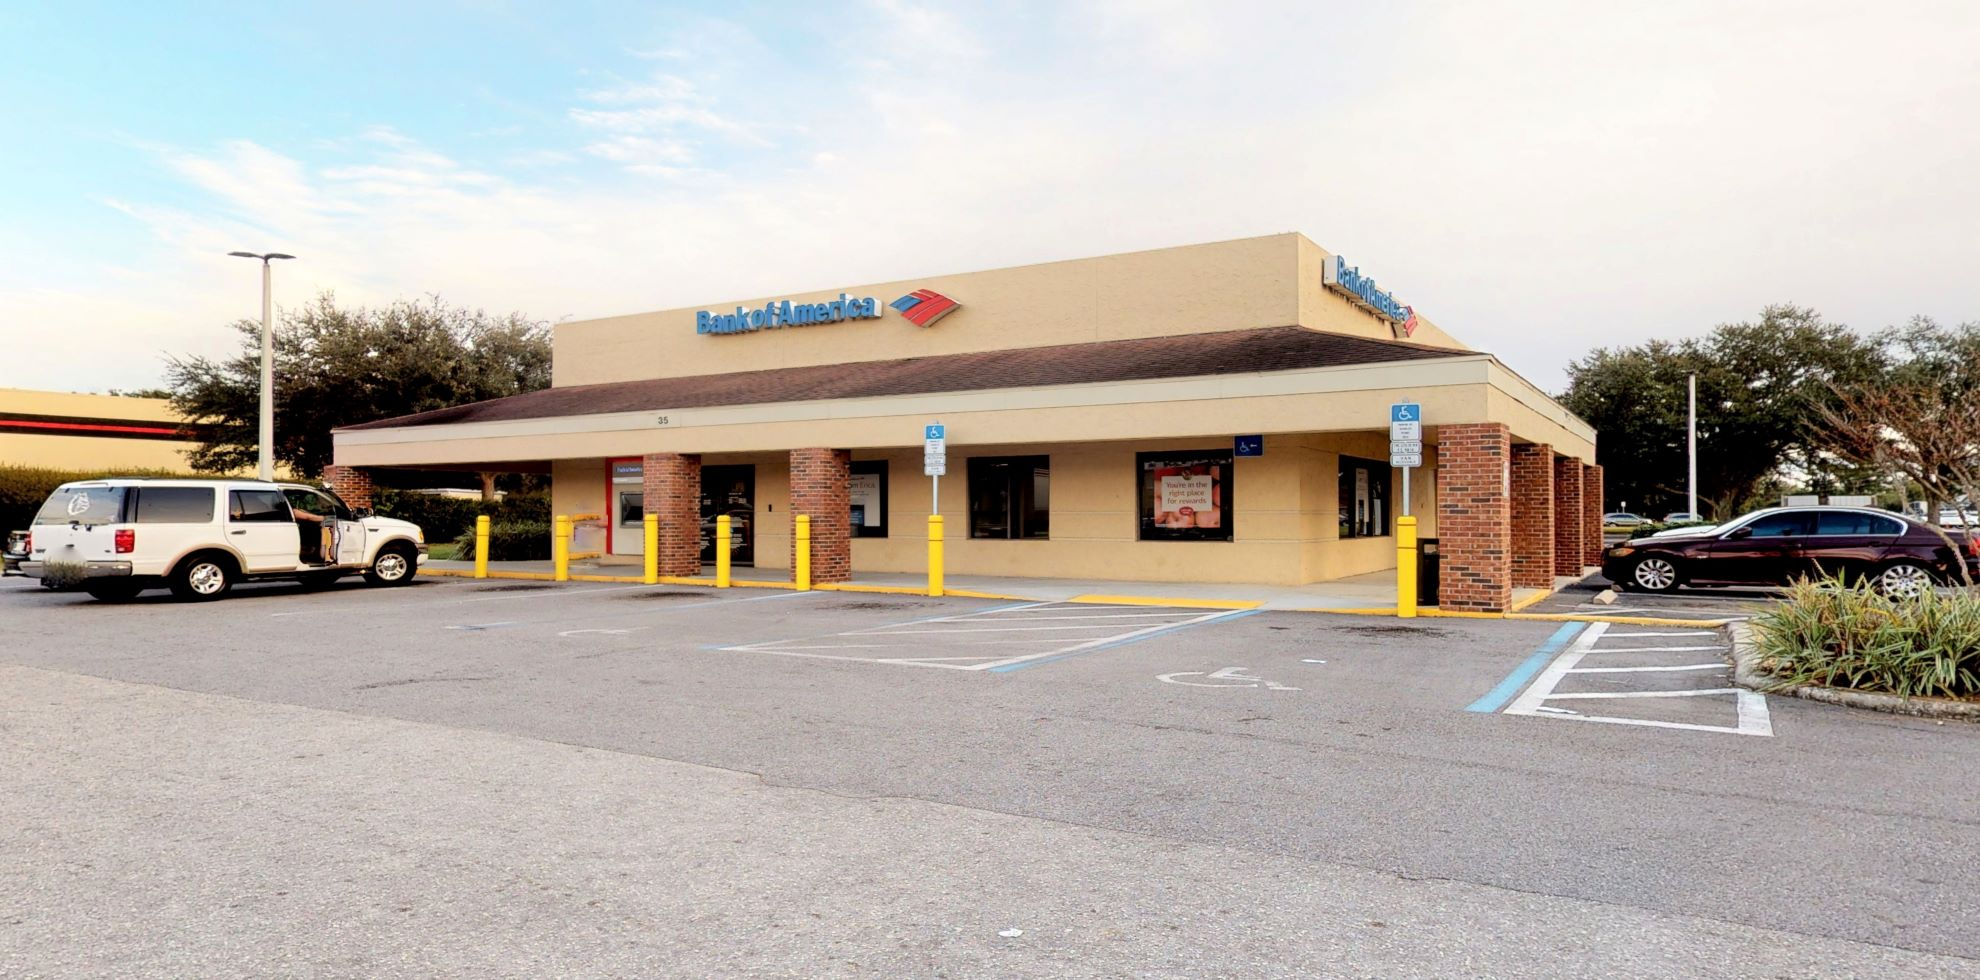 Bank of America financial center with drive-thru ATM   35 S Doverplum Ave, Kissimmee, FL 34759